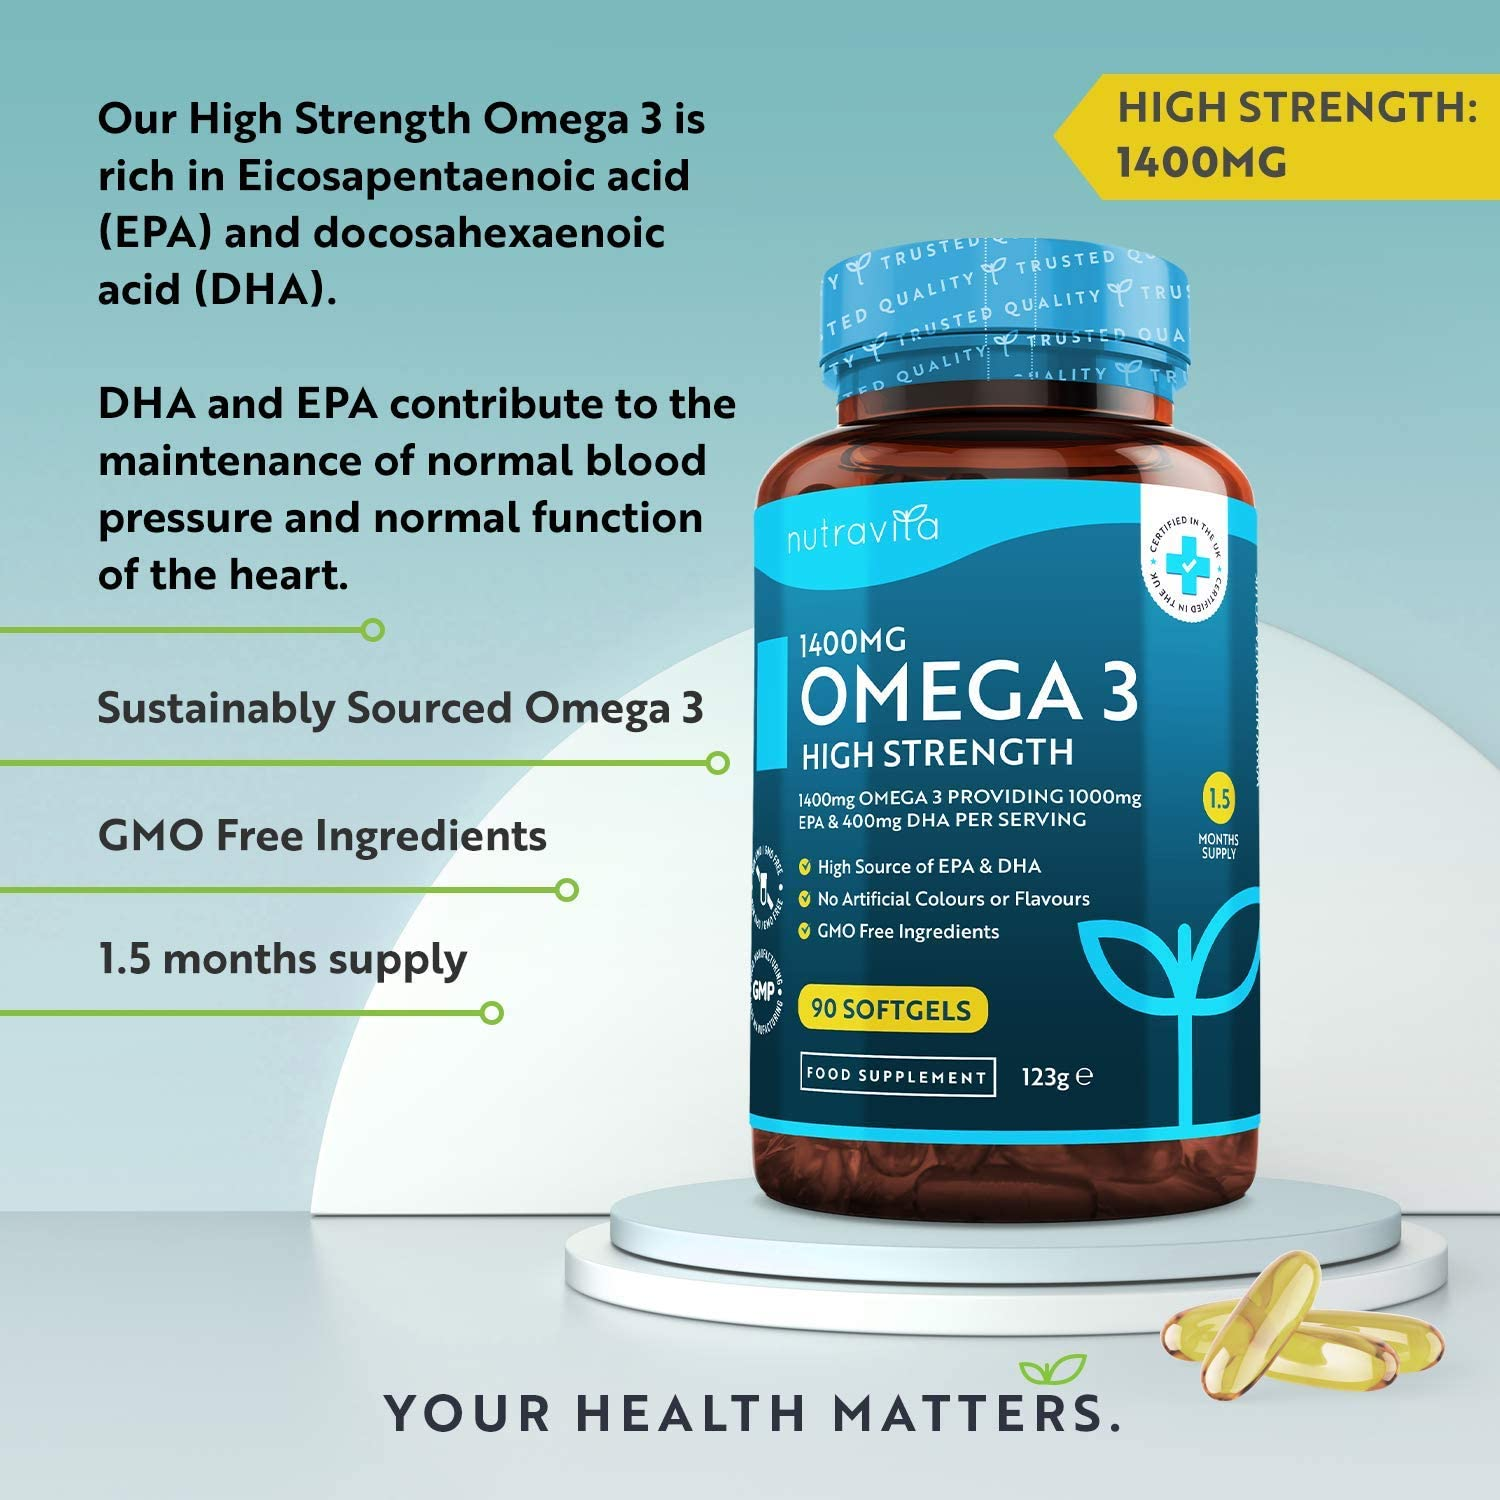 Omega 3 High Strength 1400mg 90 Softgels